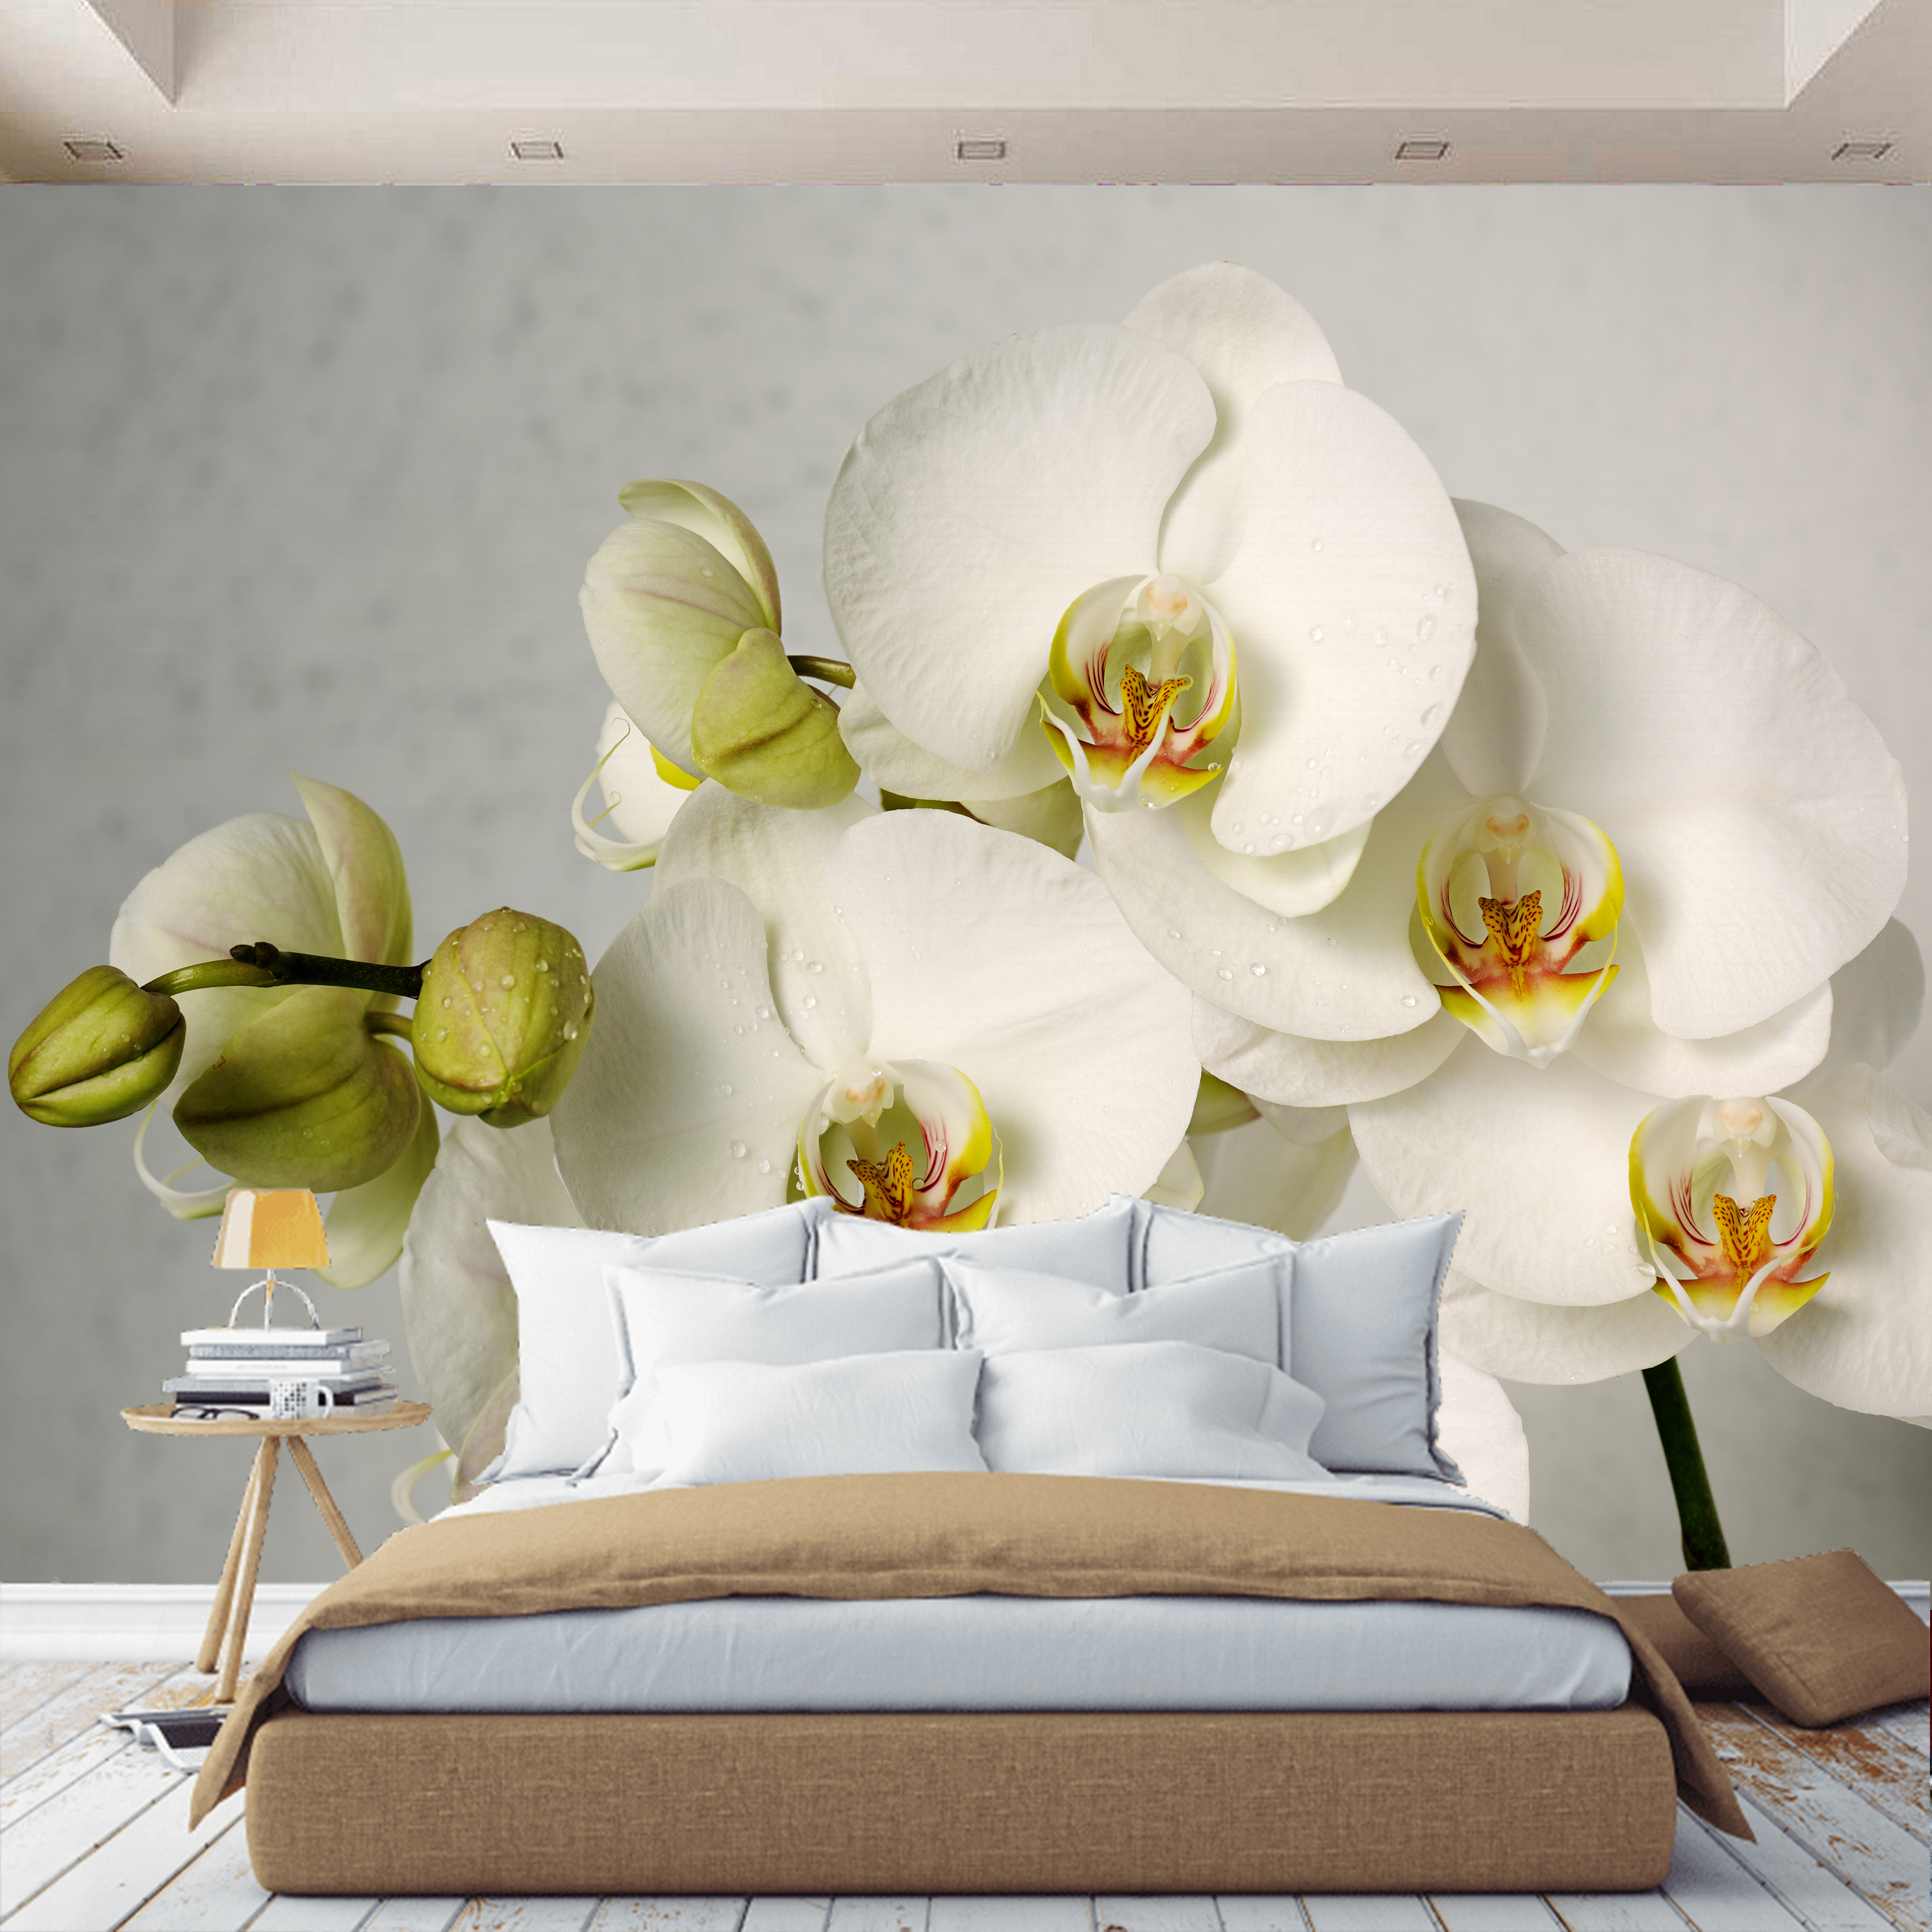 3D Wall Mural Wallpaper Orchid Flower, Custom Wallpaper, For Hall, Kitchen, Bedroom, Children's, Wall Mural Expanding Space